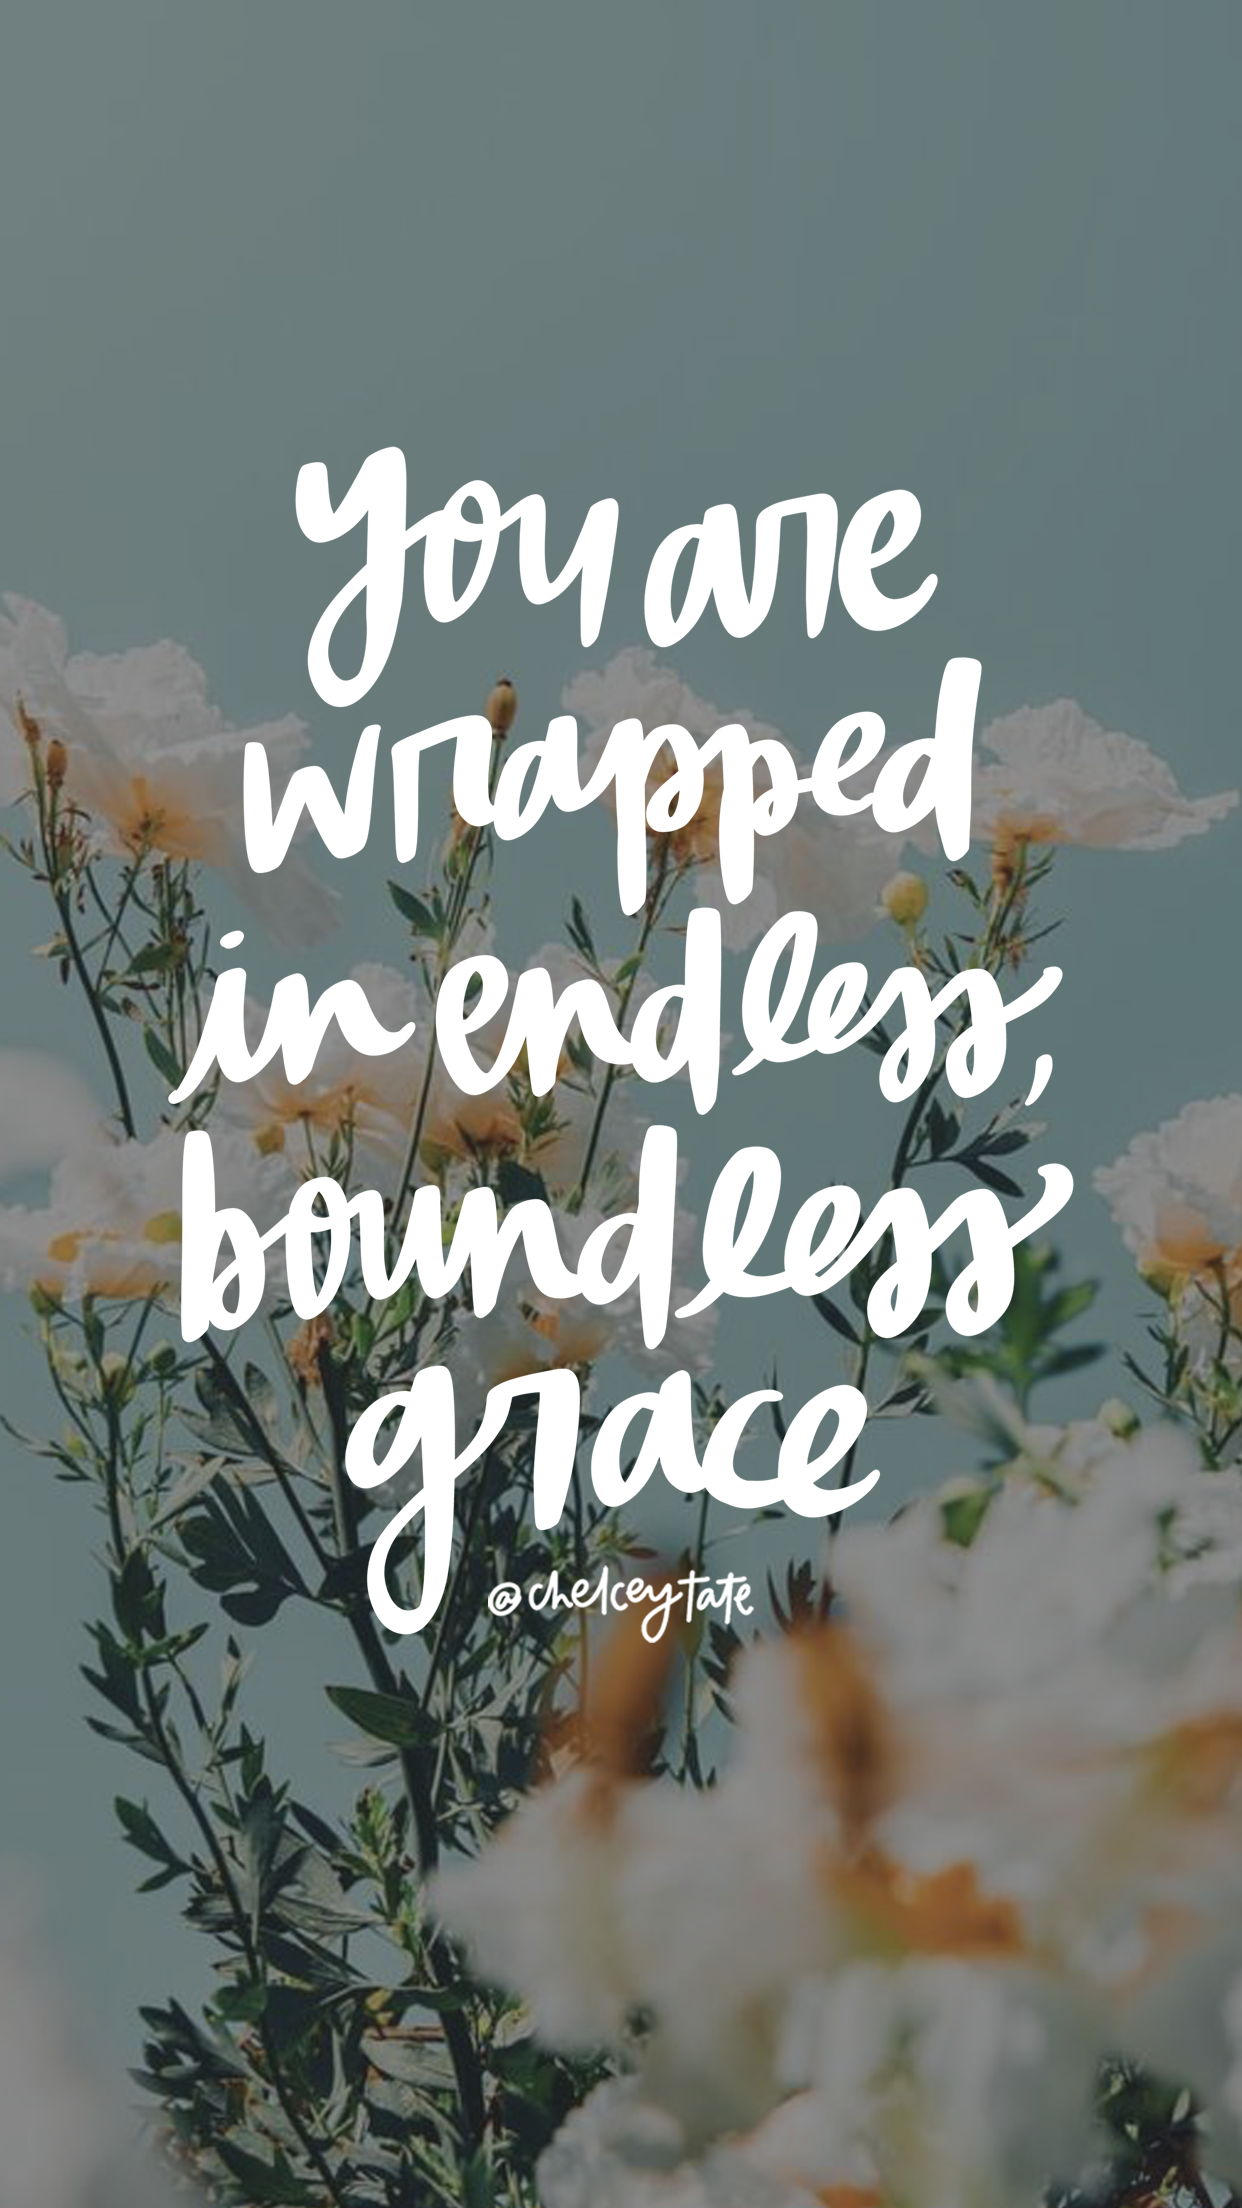 You are wrapped in endless, boundless grace iPhone Wallpaper Daily Love Note by Chelcey Tate via chelceytate.com